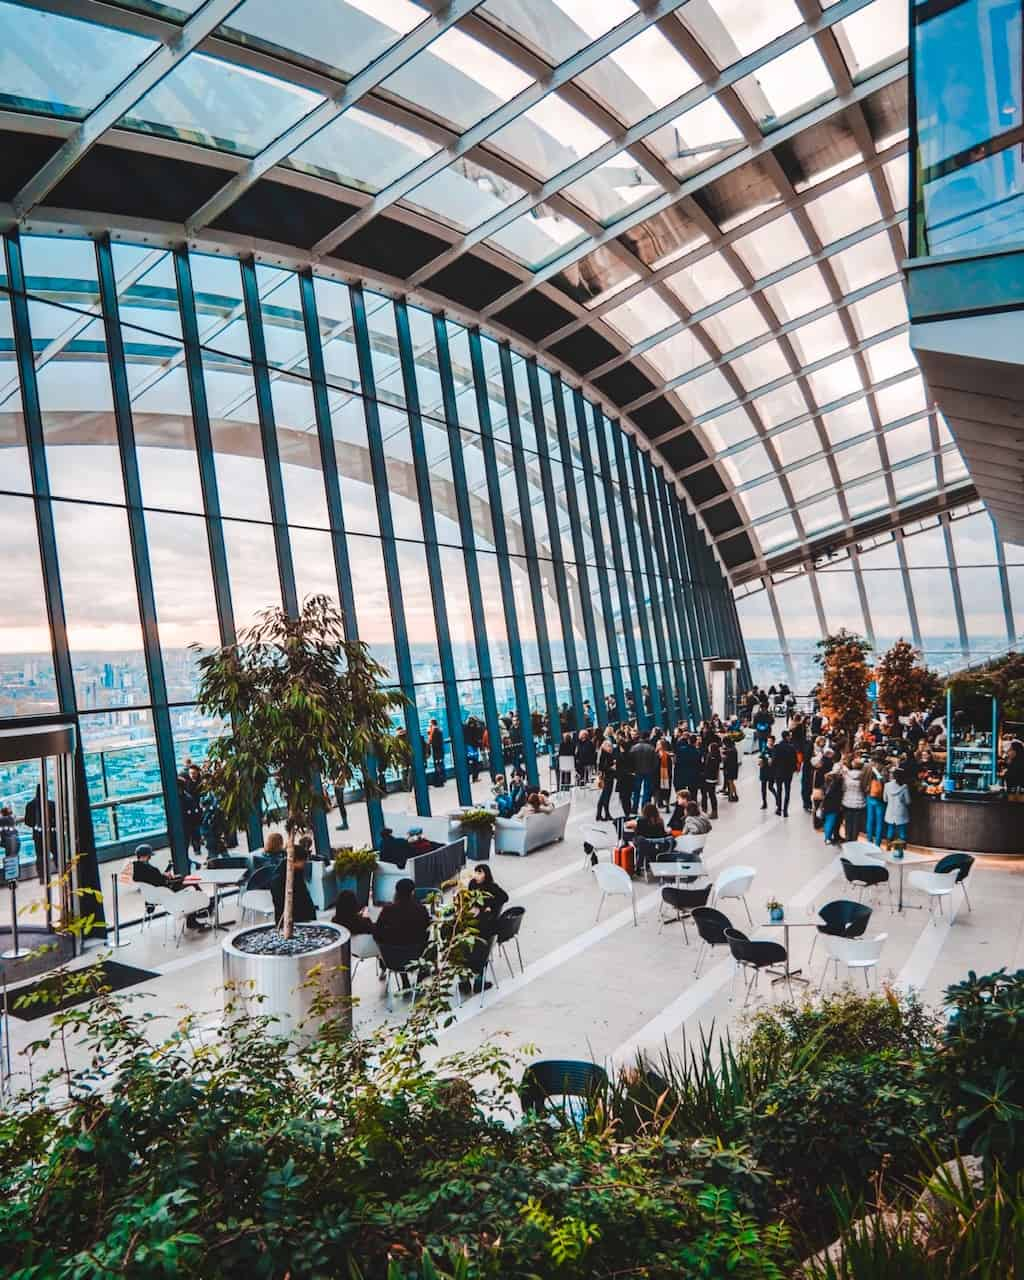 The Skygarden is one of the most Instagrammable places in London